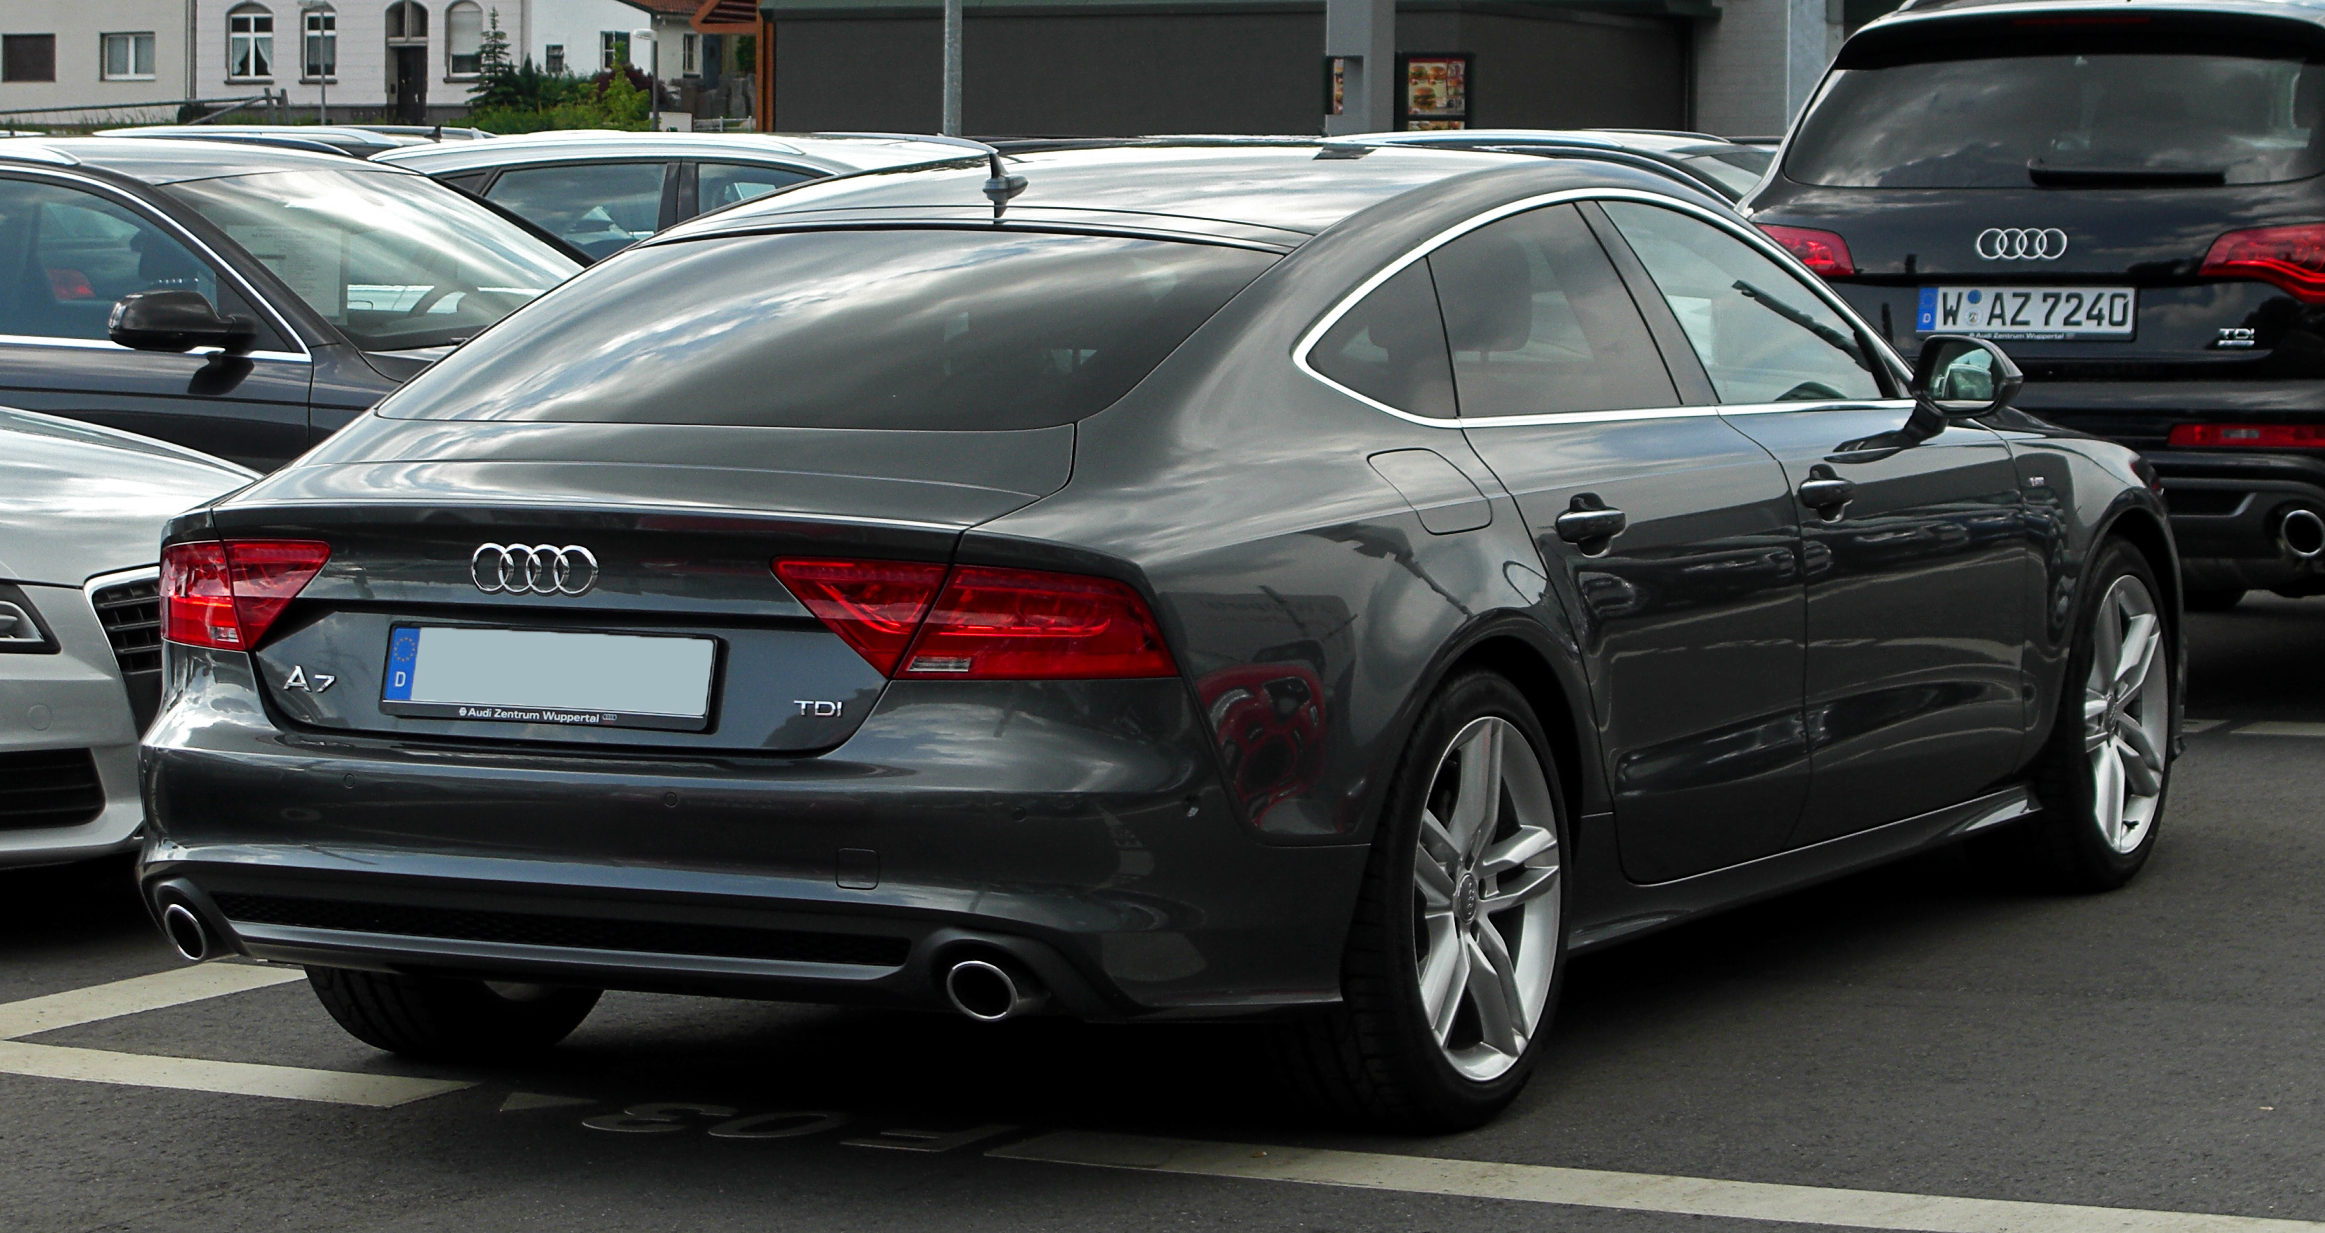 audi s7 sportback (4g) 2013 pictures